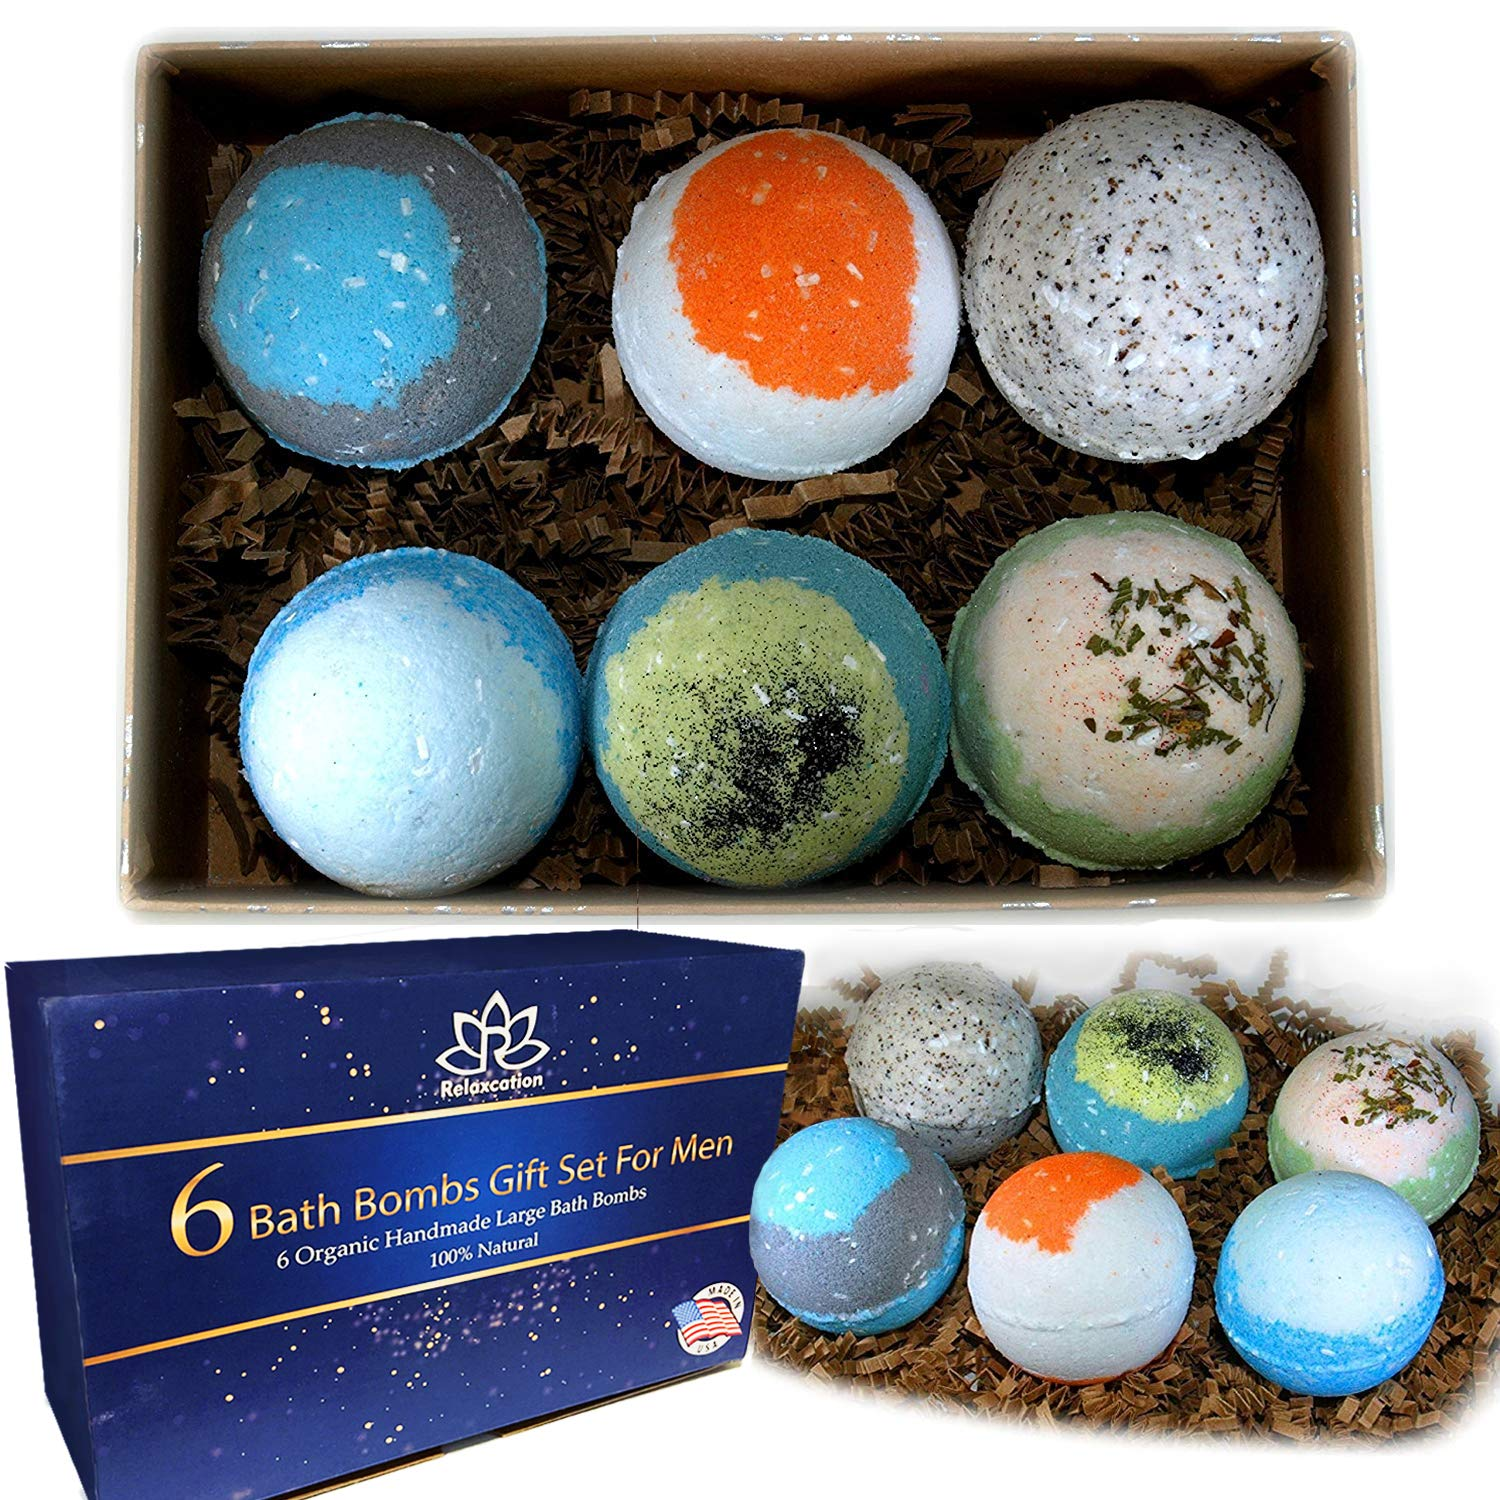 Organic Bath Bombs Gift Set For Men - Vegan Natural Ingredients - Made in the USA - Absolutely Safe for Men - Relaxing Epsom, Himalayan, Dead Sea Salts & Essential Oils Relaxcation Inc